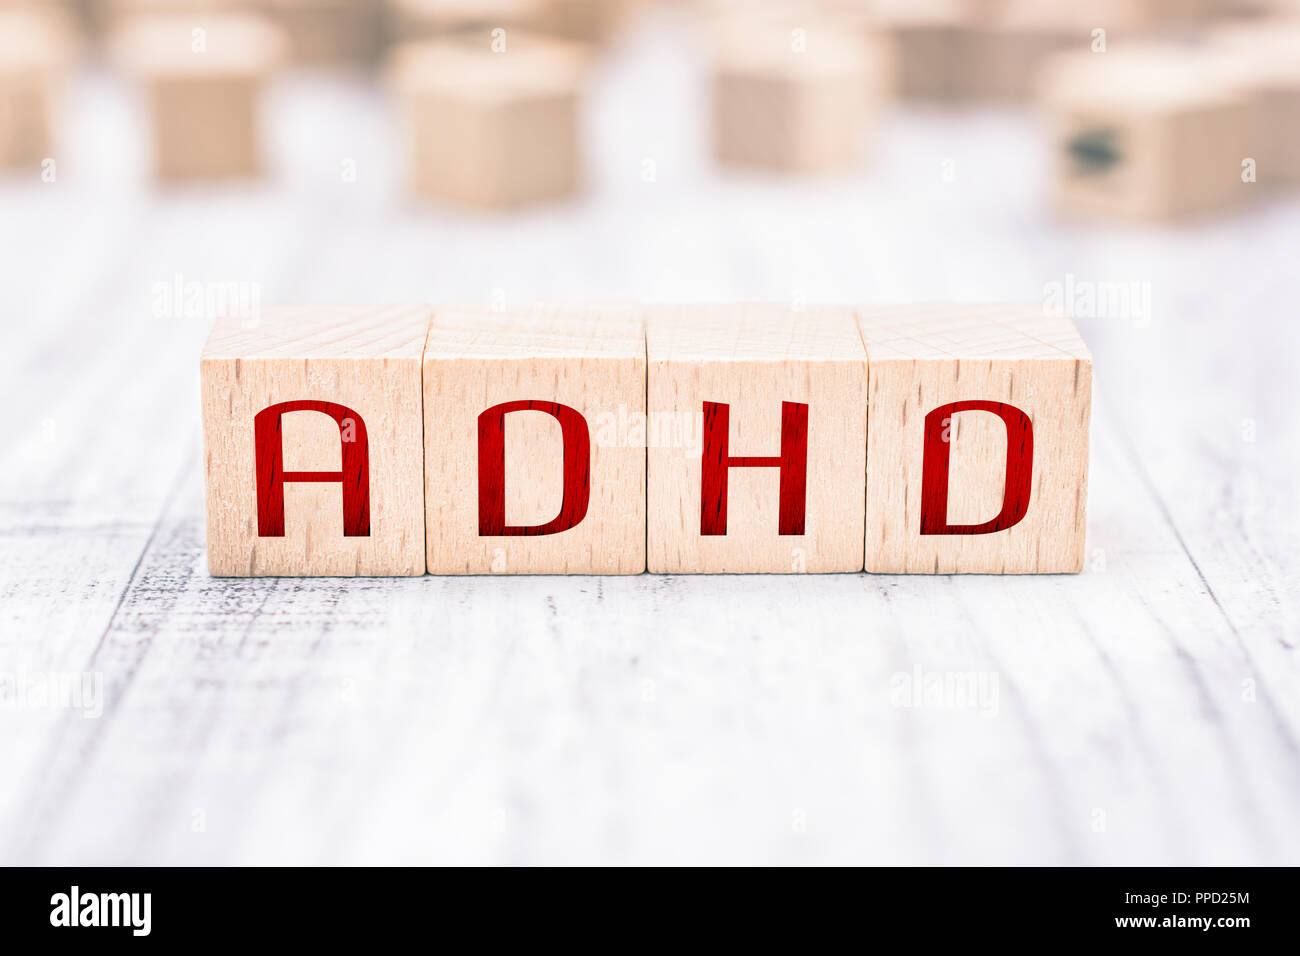 The Abbreviation ADHD Formed By Wooden Blocks On A White Table - Stock Image